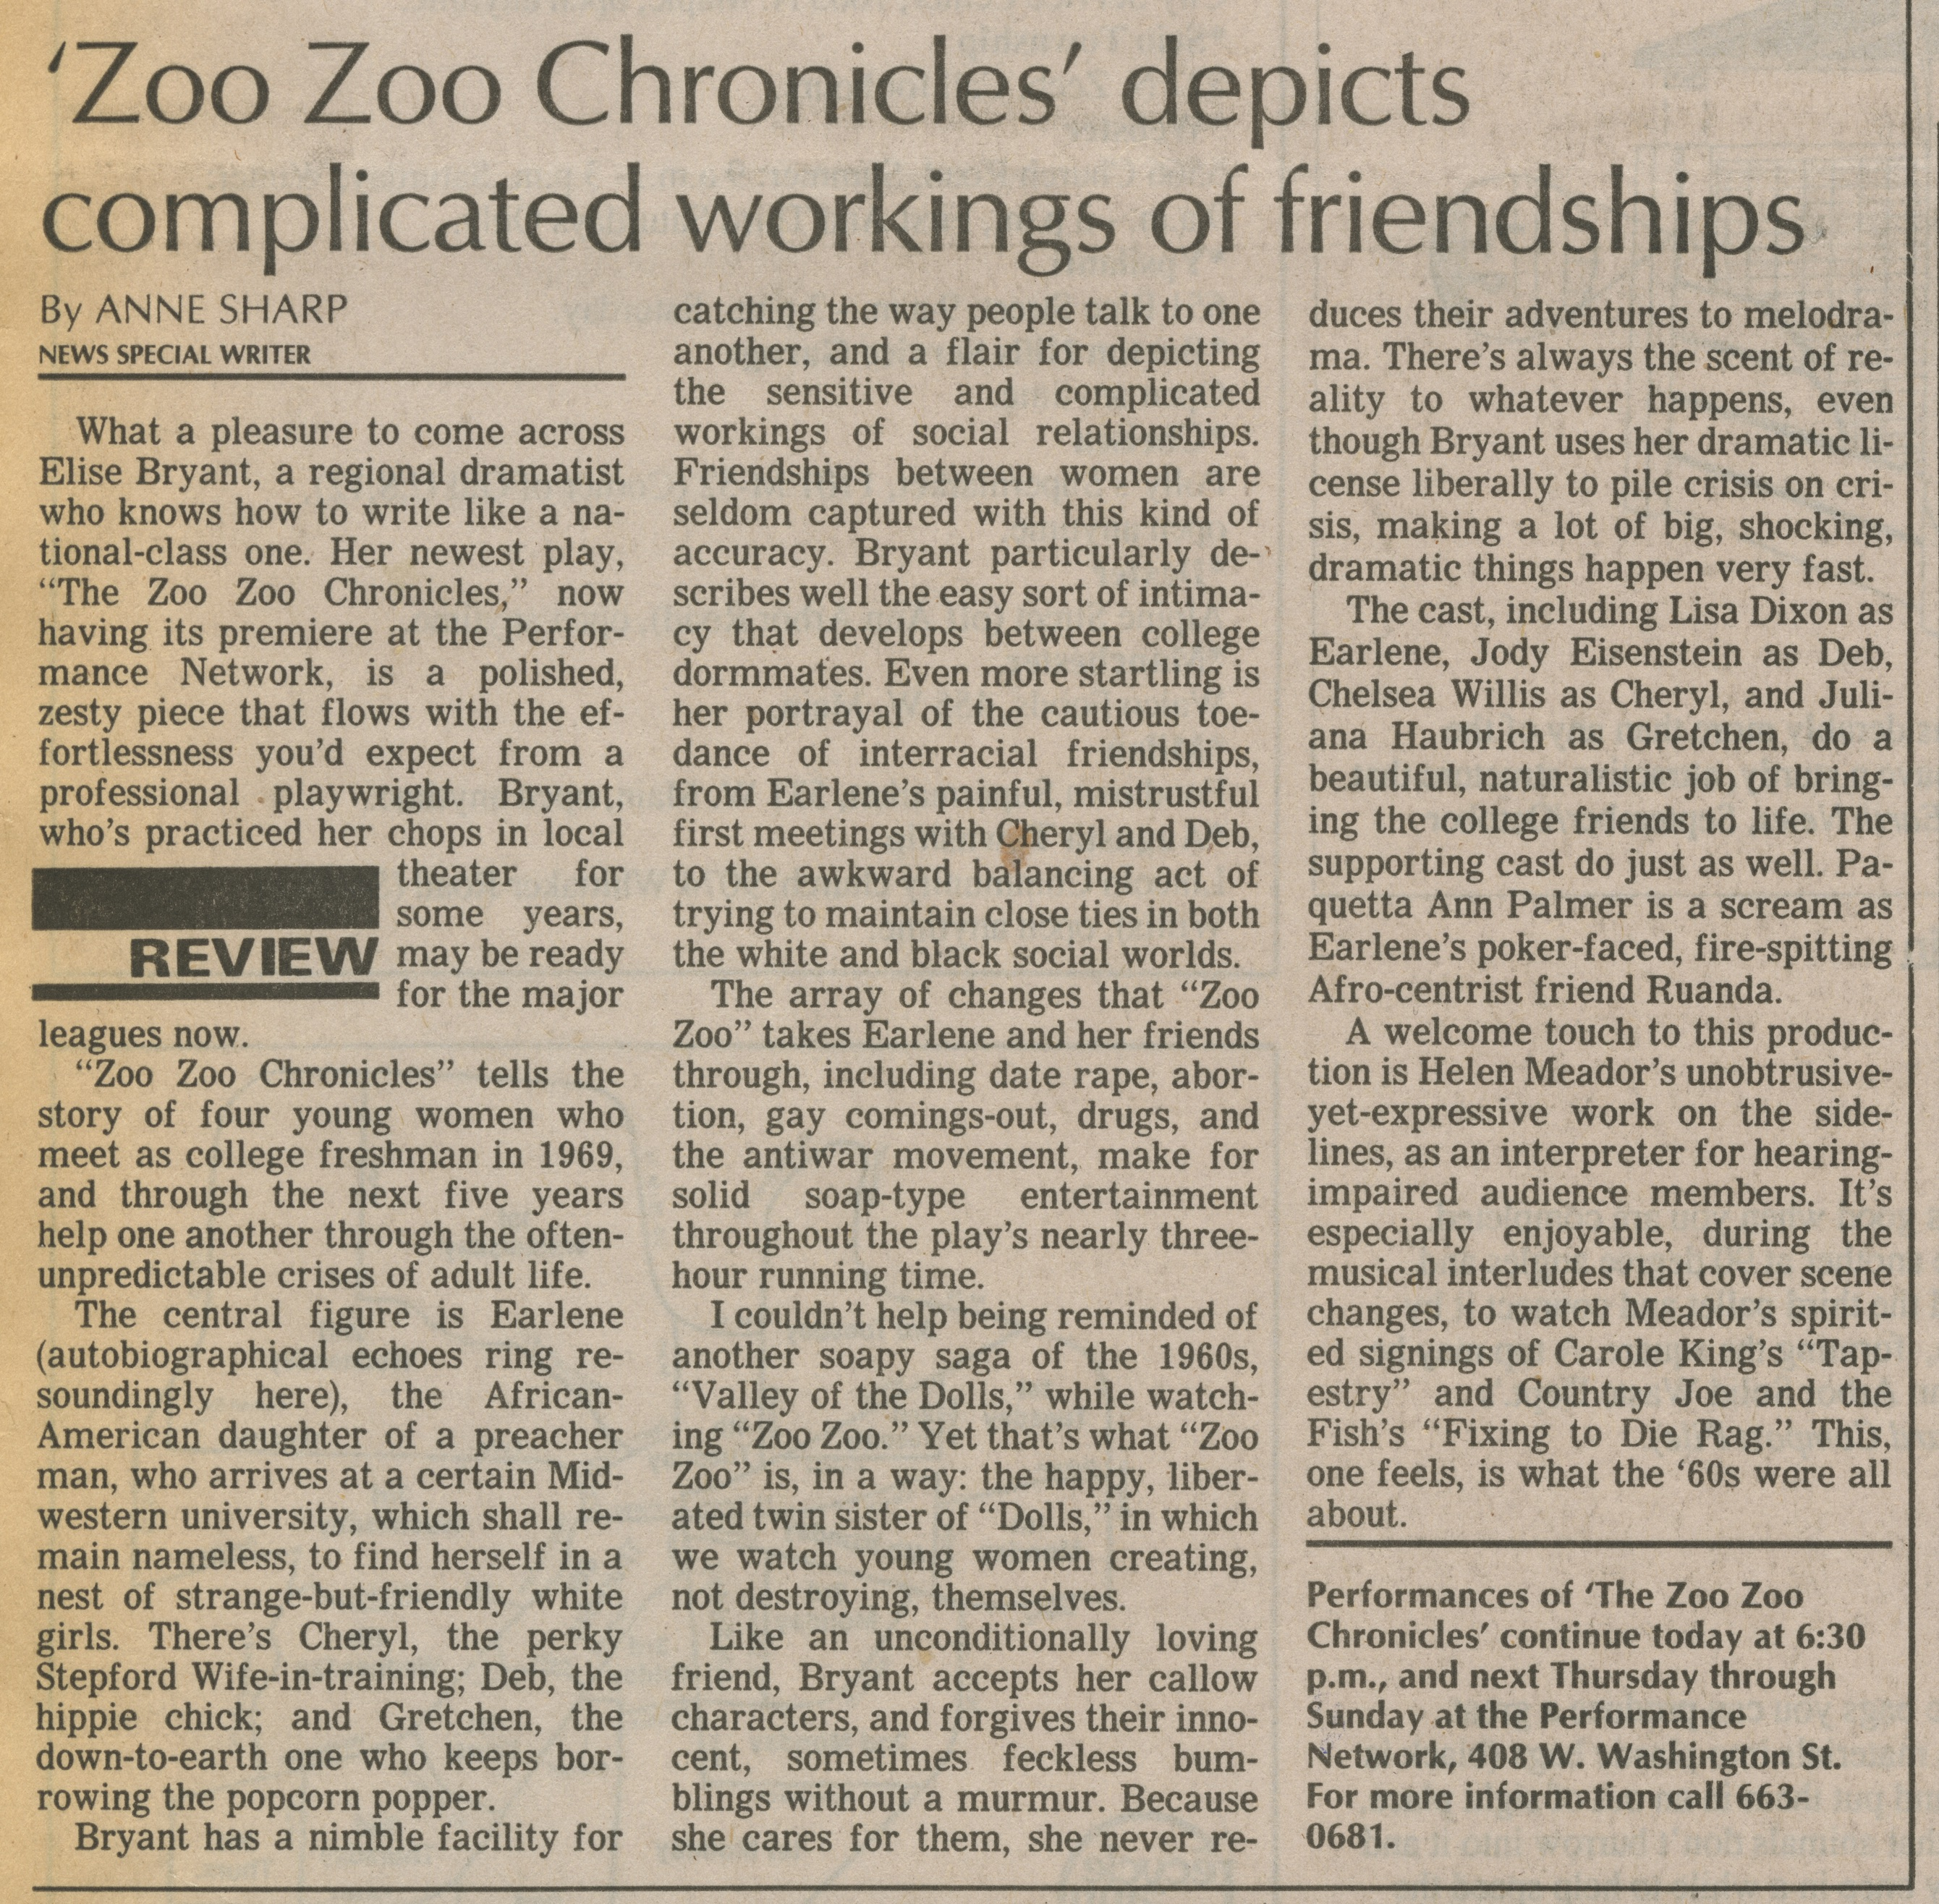 'Zoo Zoo Chronicles' depicts complicated working of friendships image